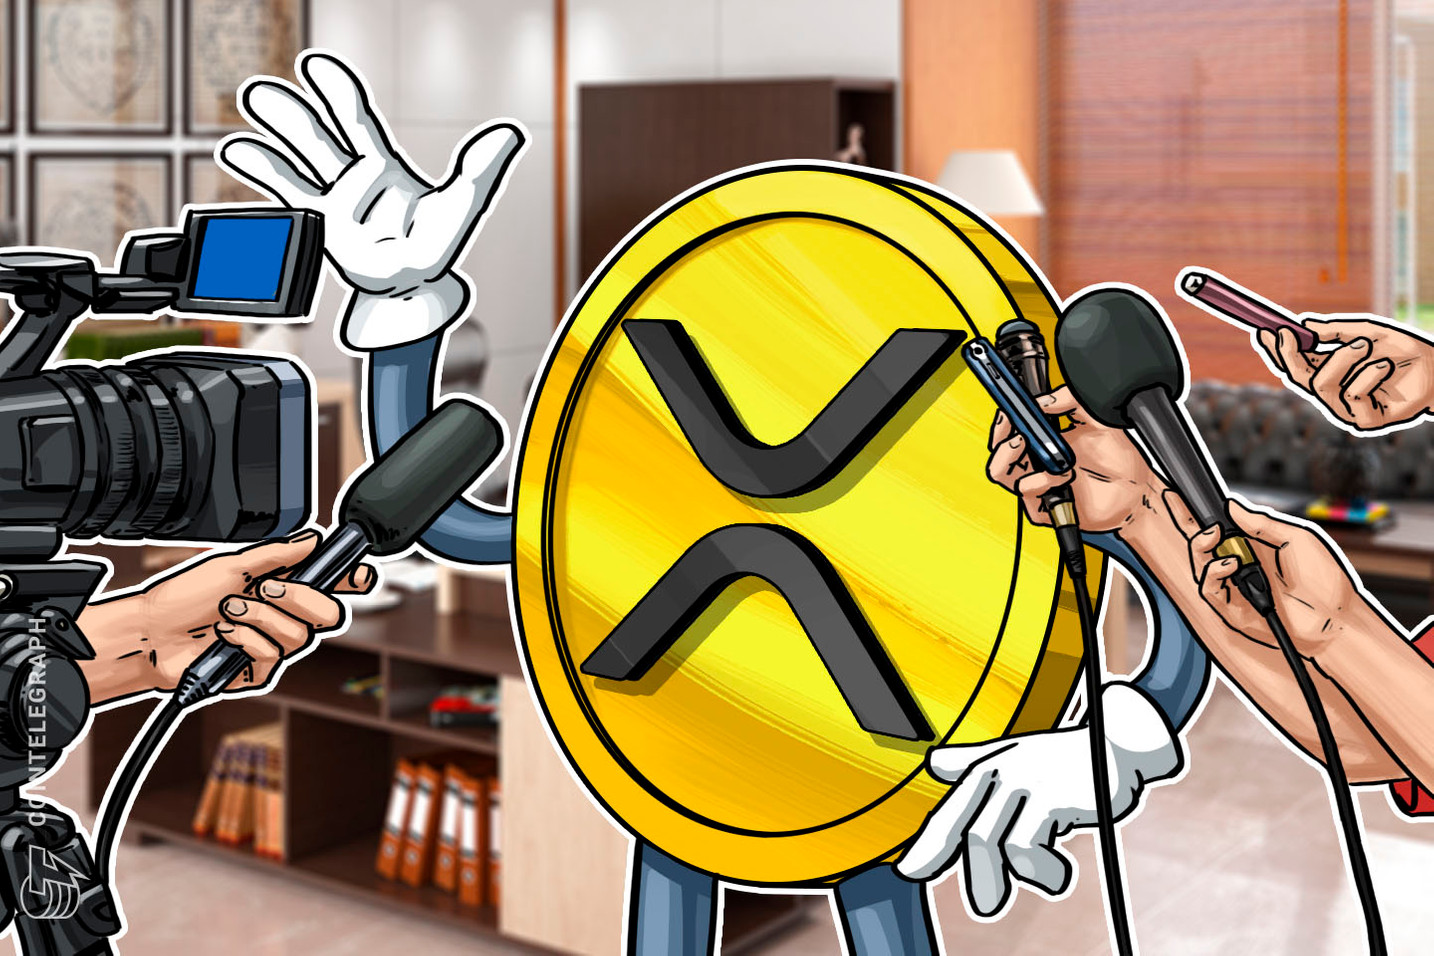 Ripple's Xpring Gives $265 Million in XRP to Content Platform Coil